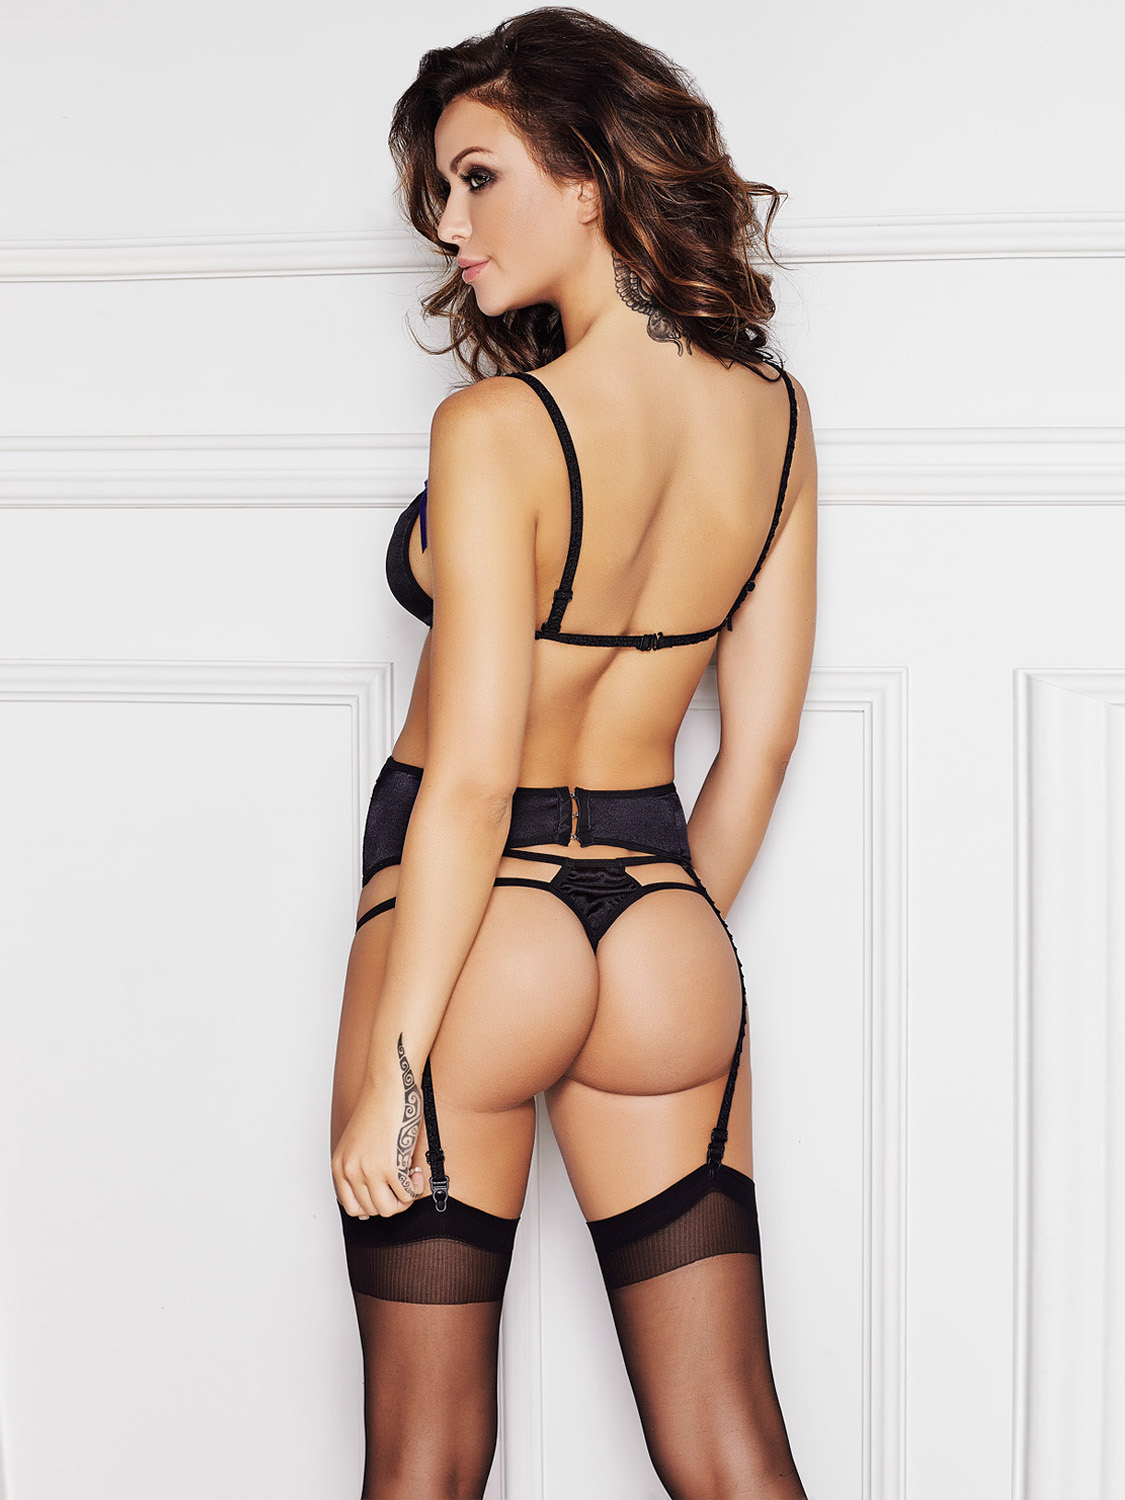 hot transparent lingerie girls back